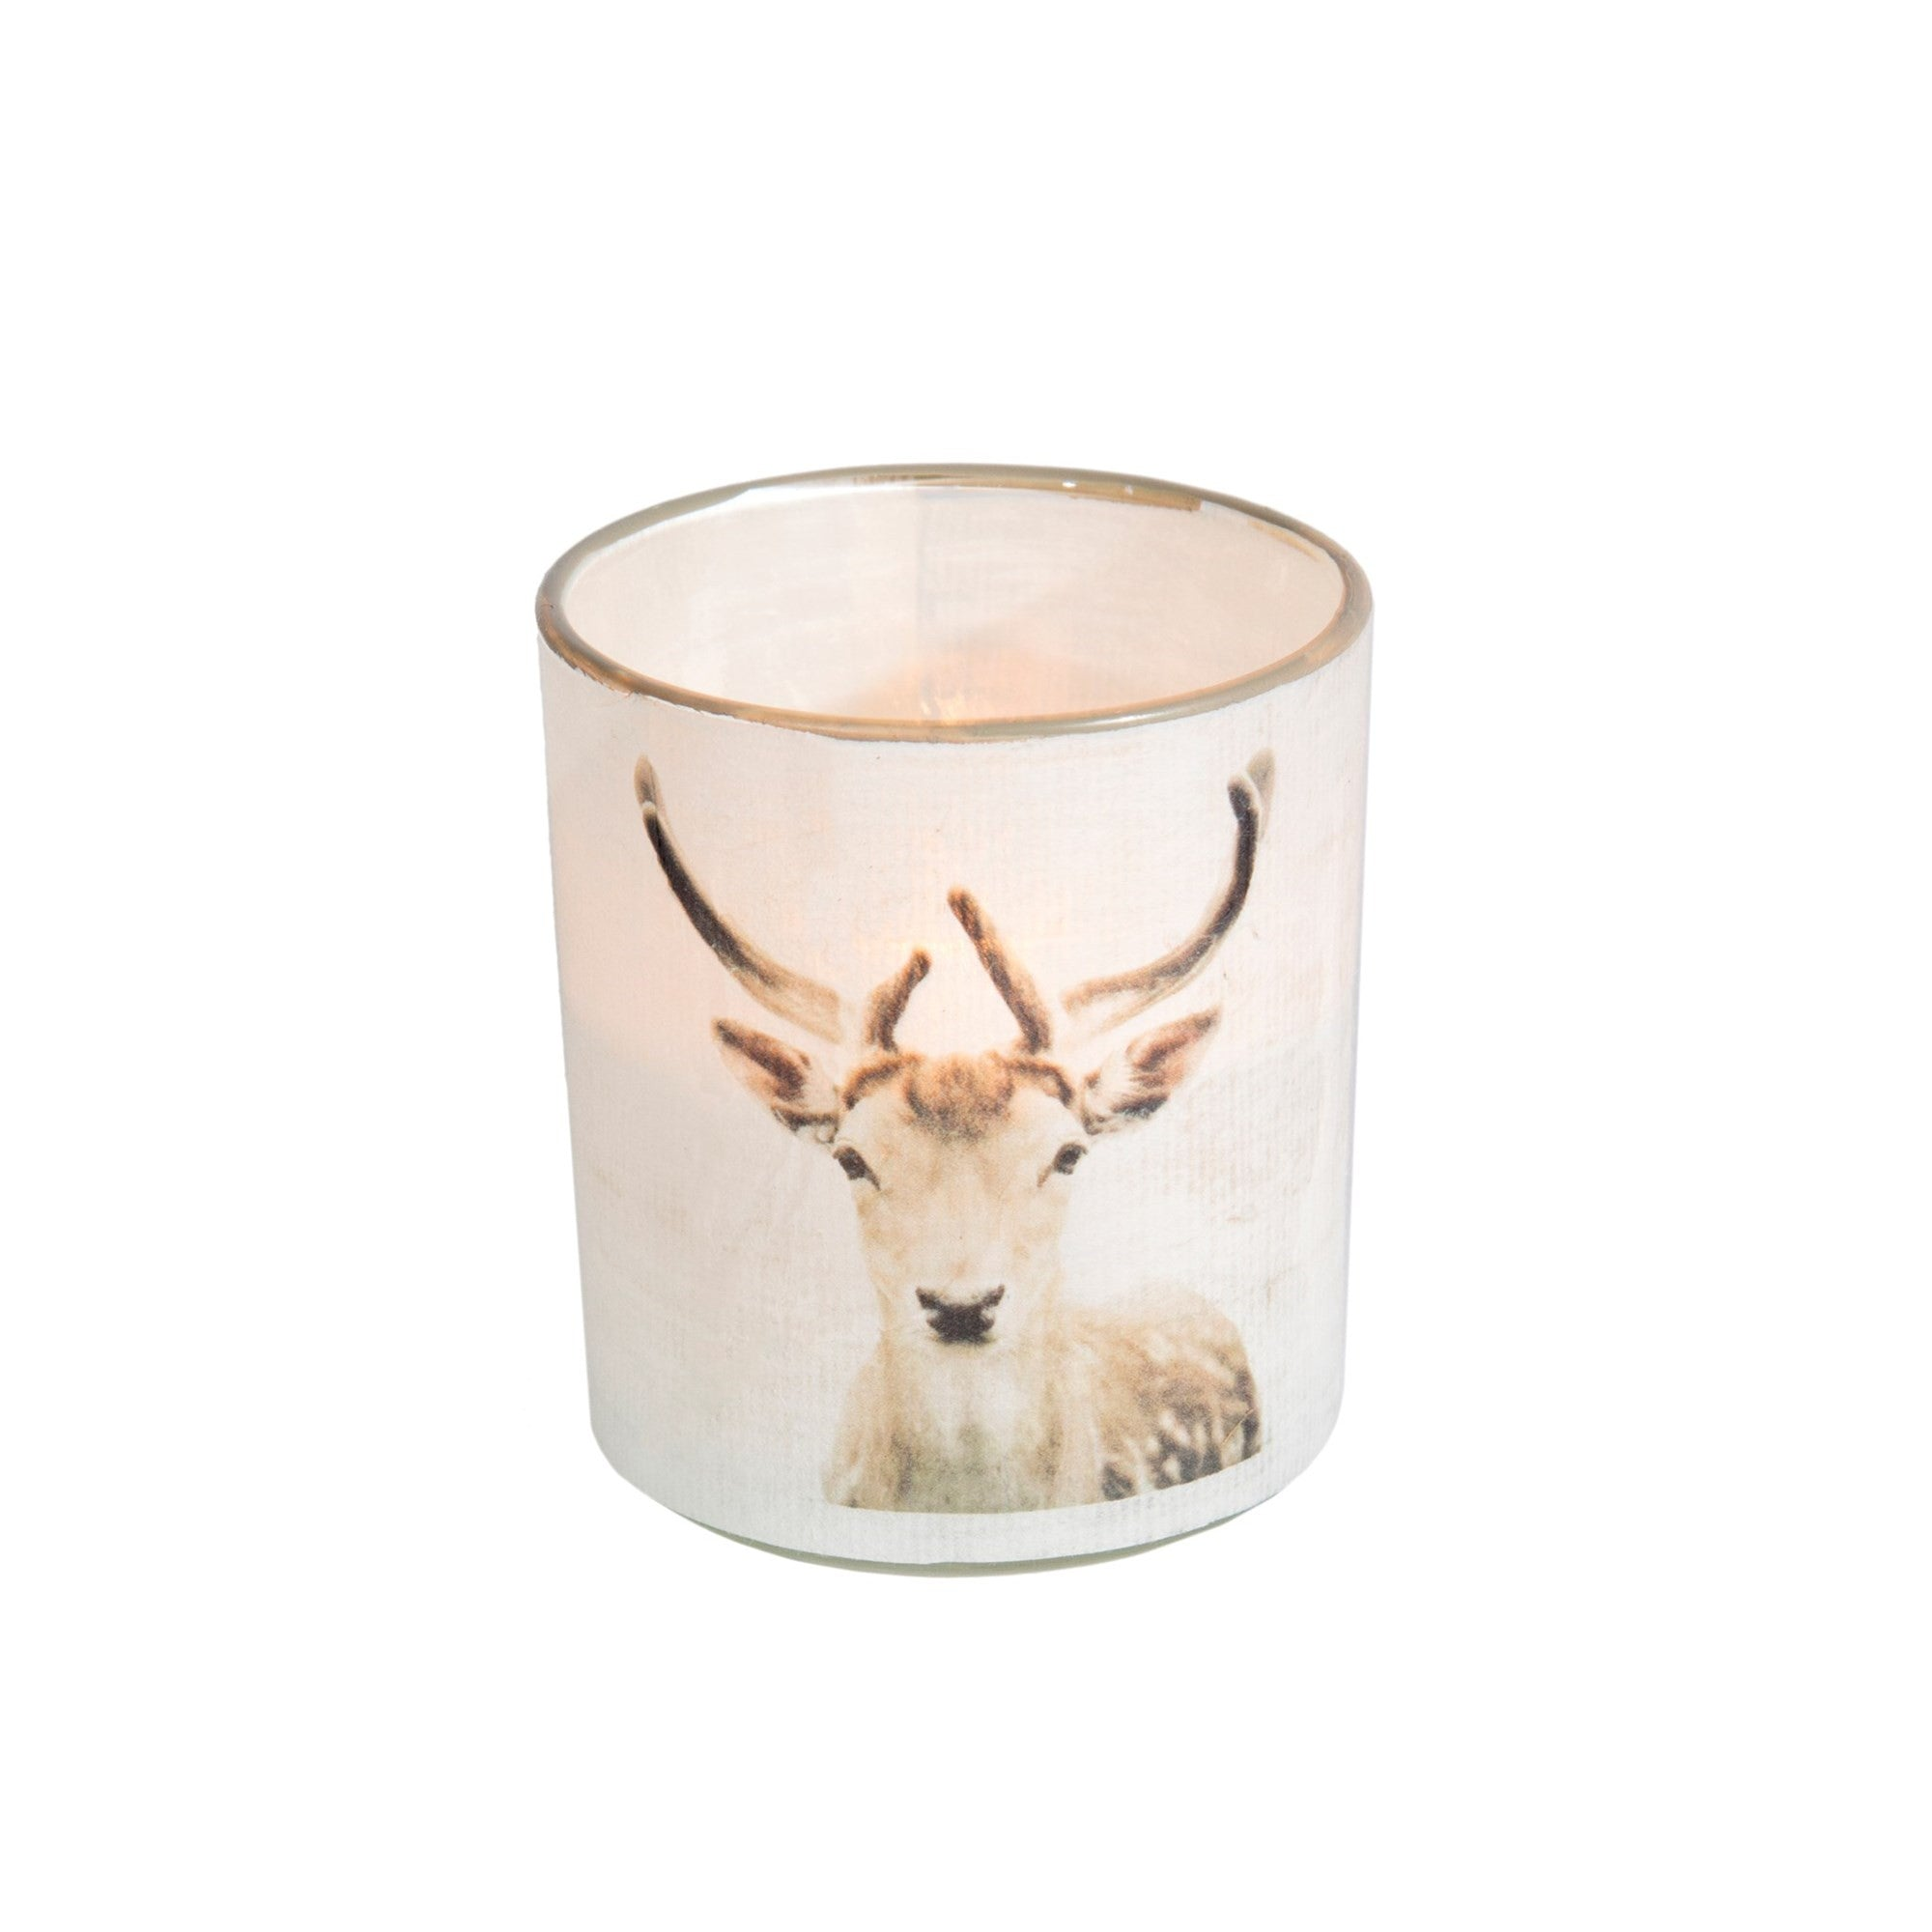 Deer Head Tea Light Holder, CF-Canfloyd, Putti Fine Furnishings